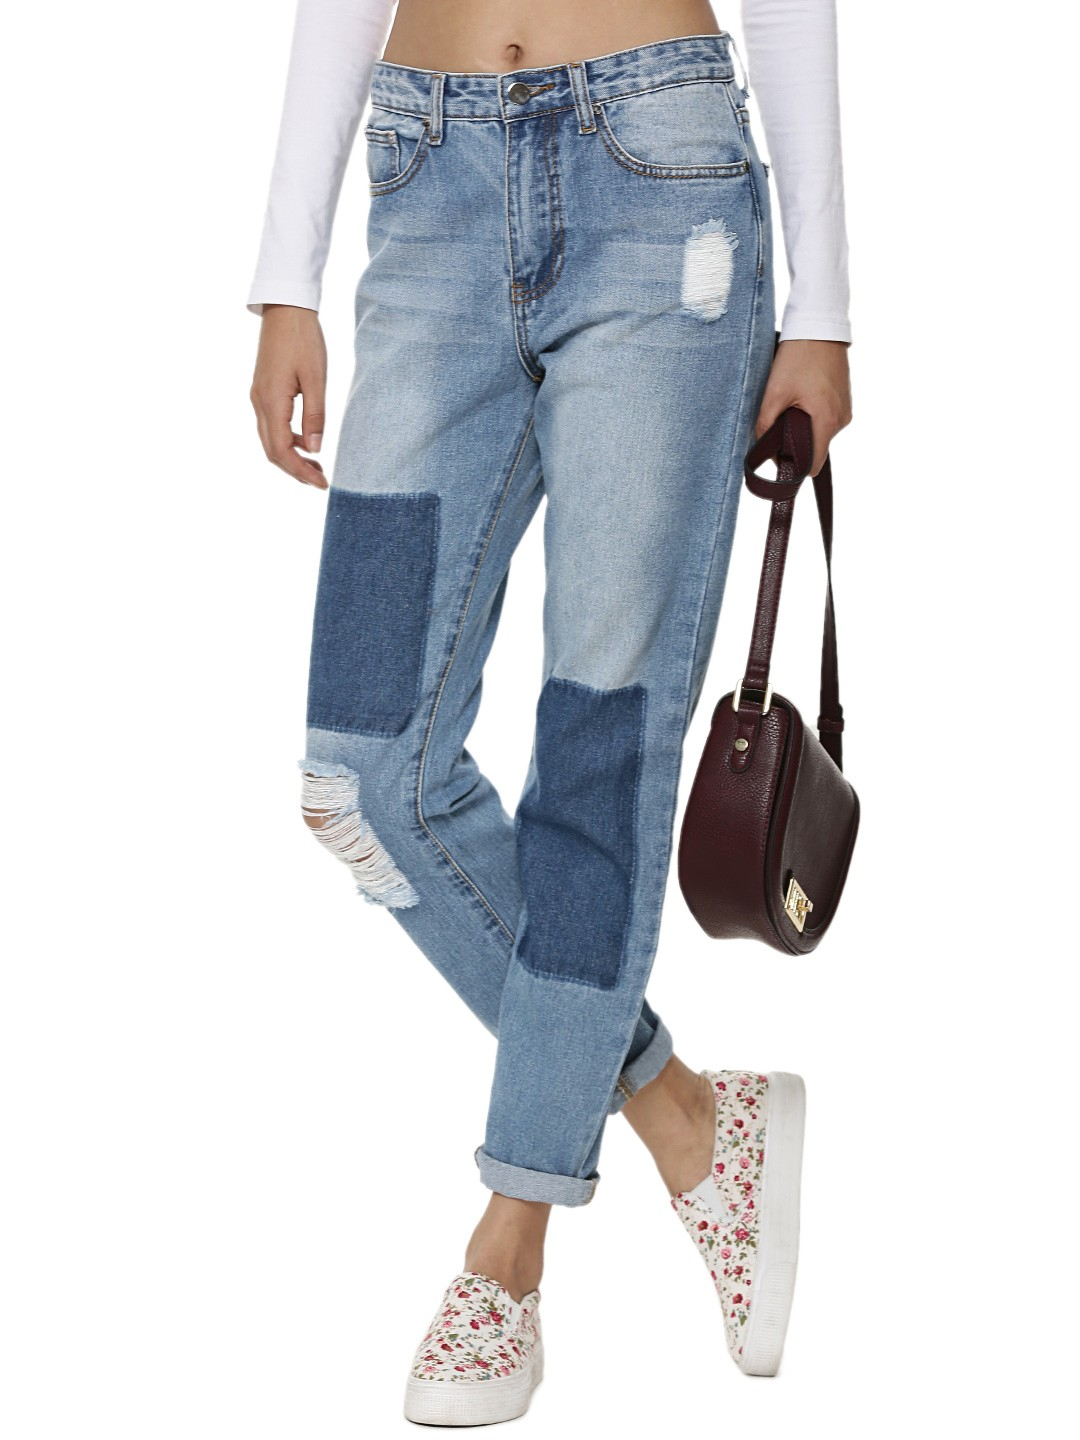 Best Jean Brands For Women